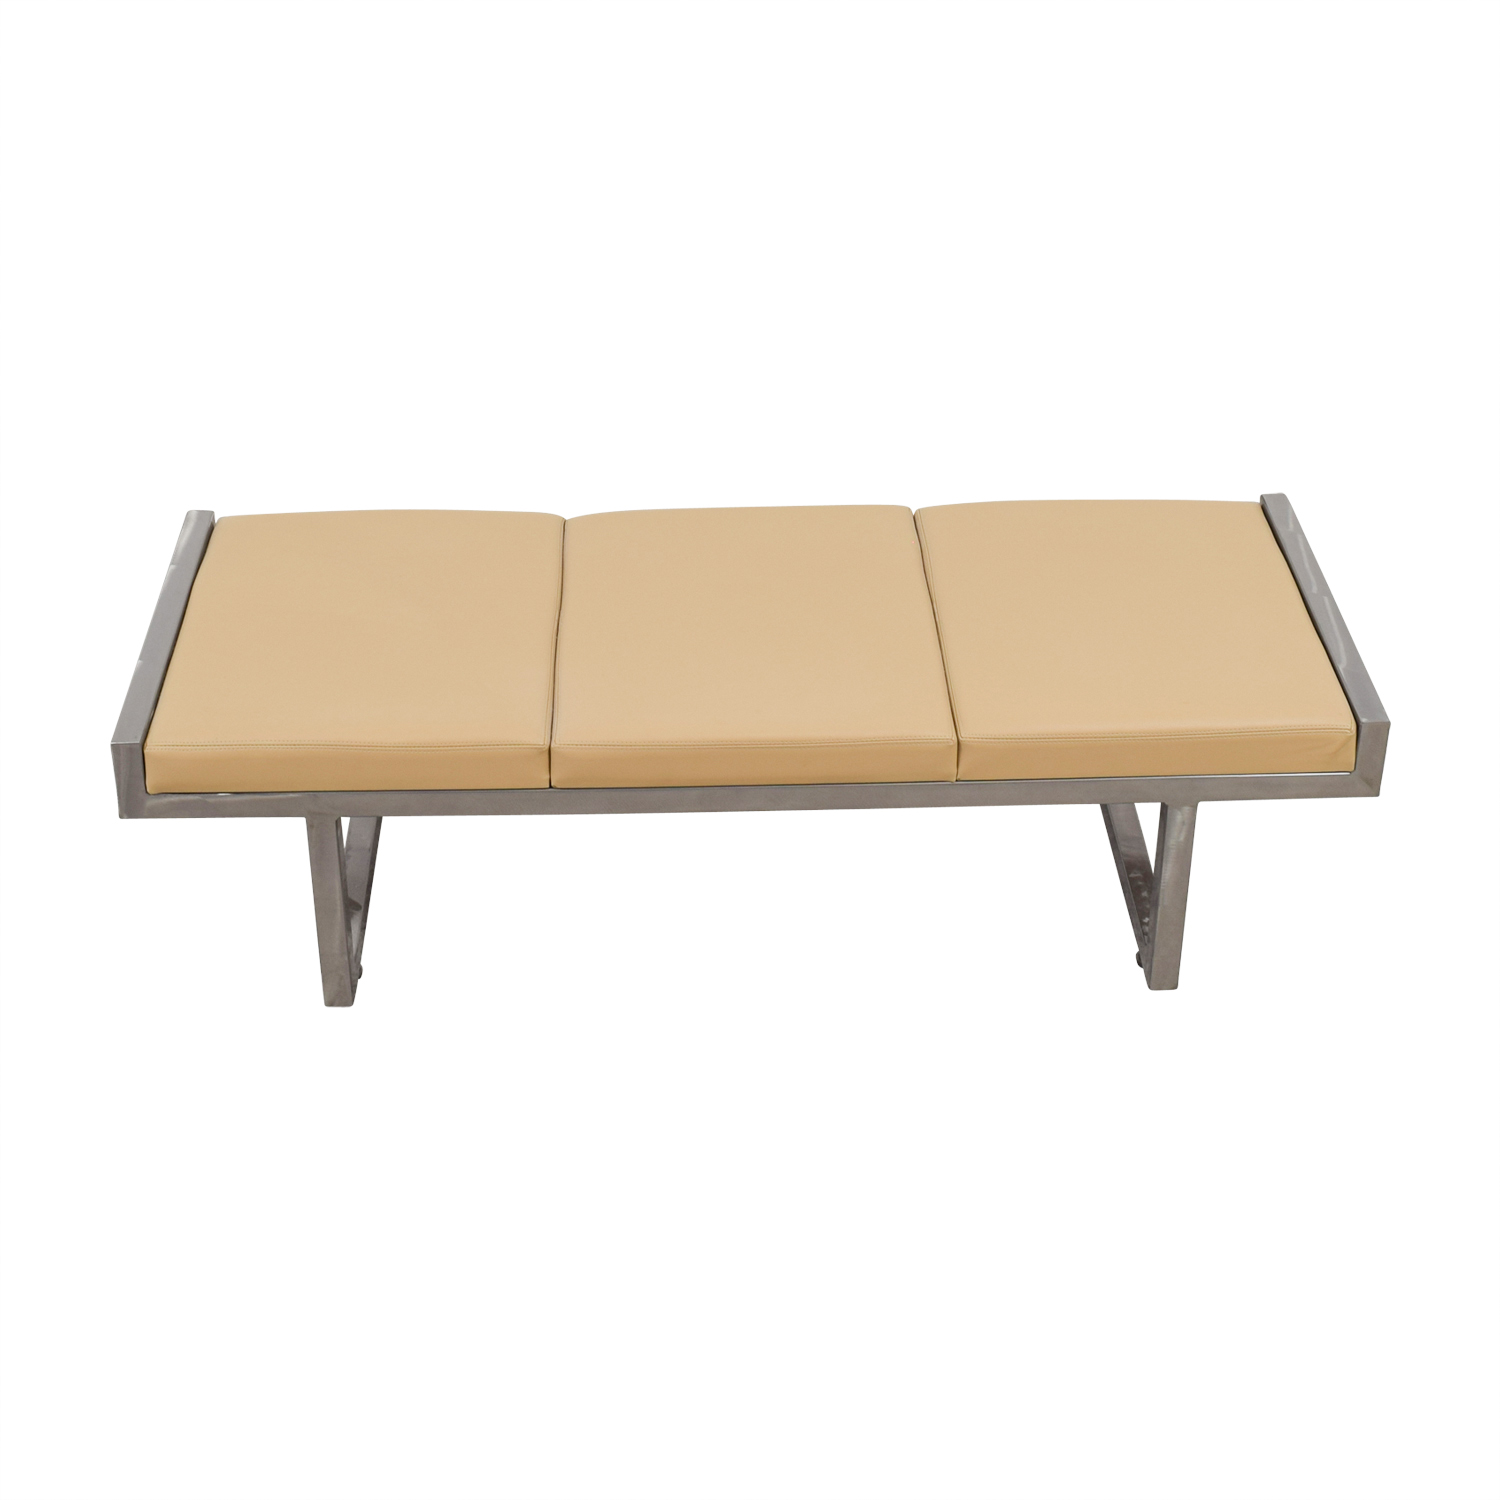 Johnston Casuals Furniture Johnston Casuals Furniture Symphony Buff Bench on sale